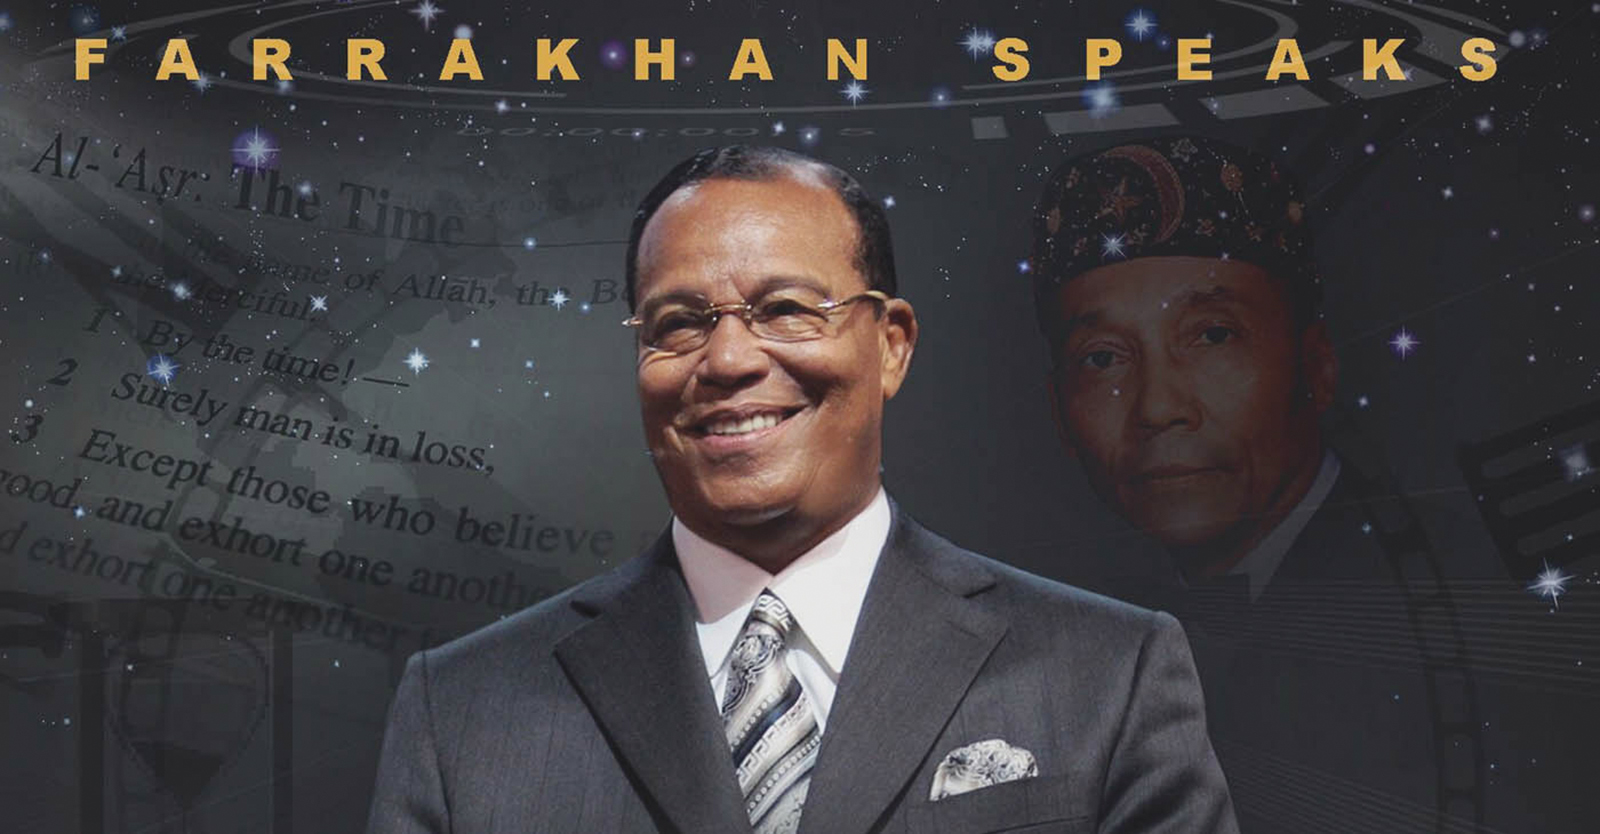 The Honorable Minister Louis Farrakhan of the Nation of Islam have taught and convened a major panel featuring several experts on UFOs during one of the Muslim organization's Saviours' Day conventions.